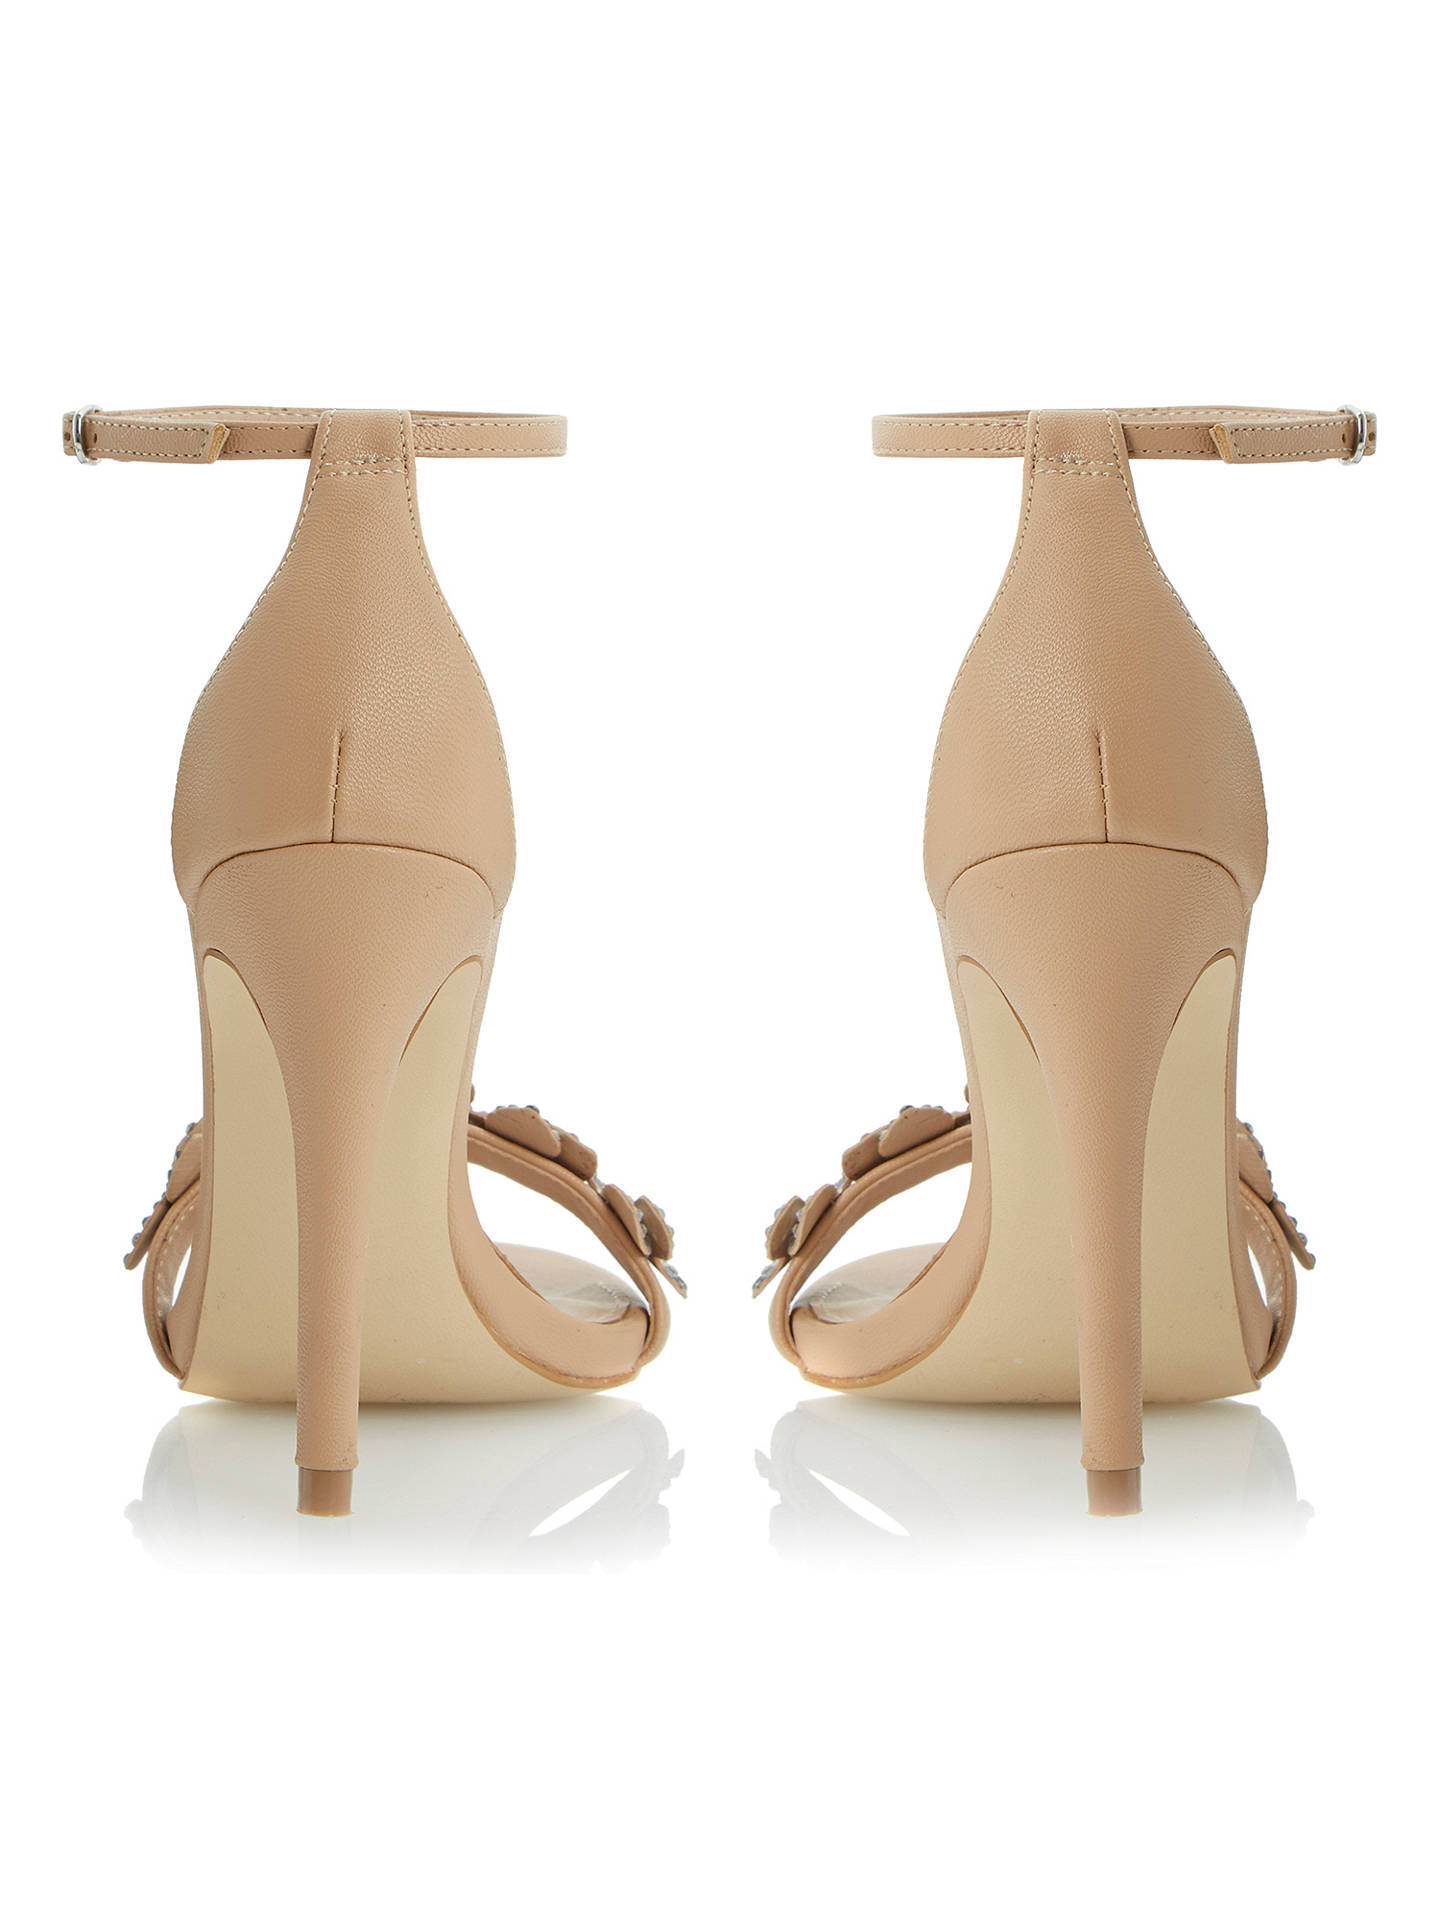 541eca11535 Steve Madden Stecy-F SM Barely There High Heeled Sandals, Nude ...